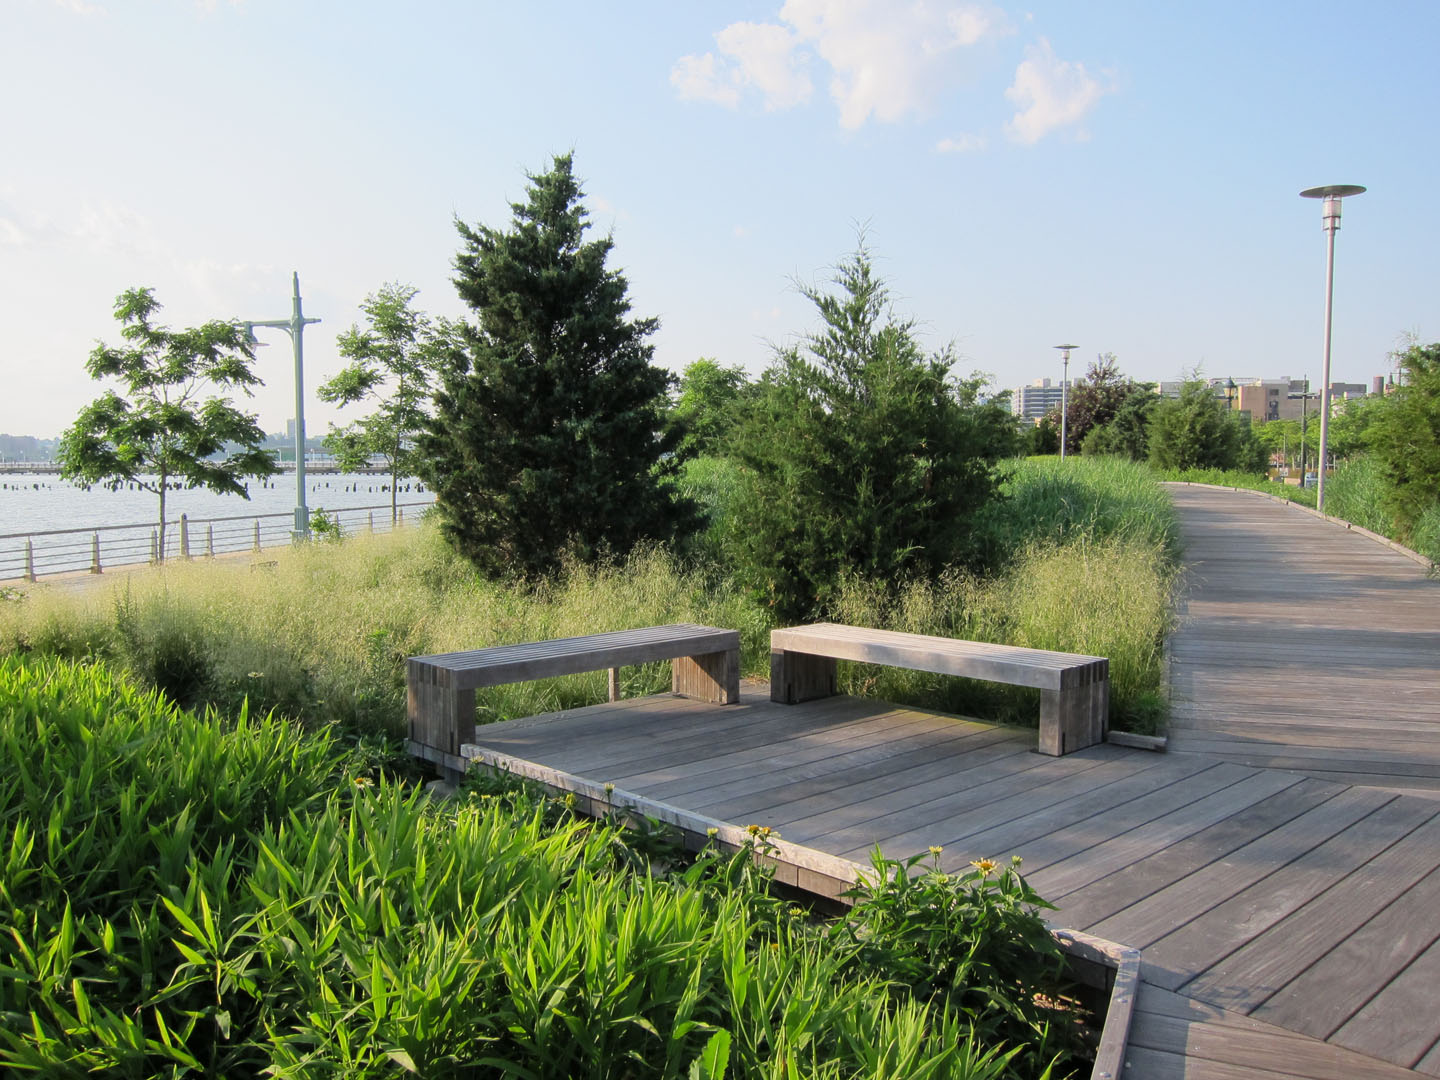 66 Square Feet Plus How To Get To The Highline